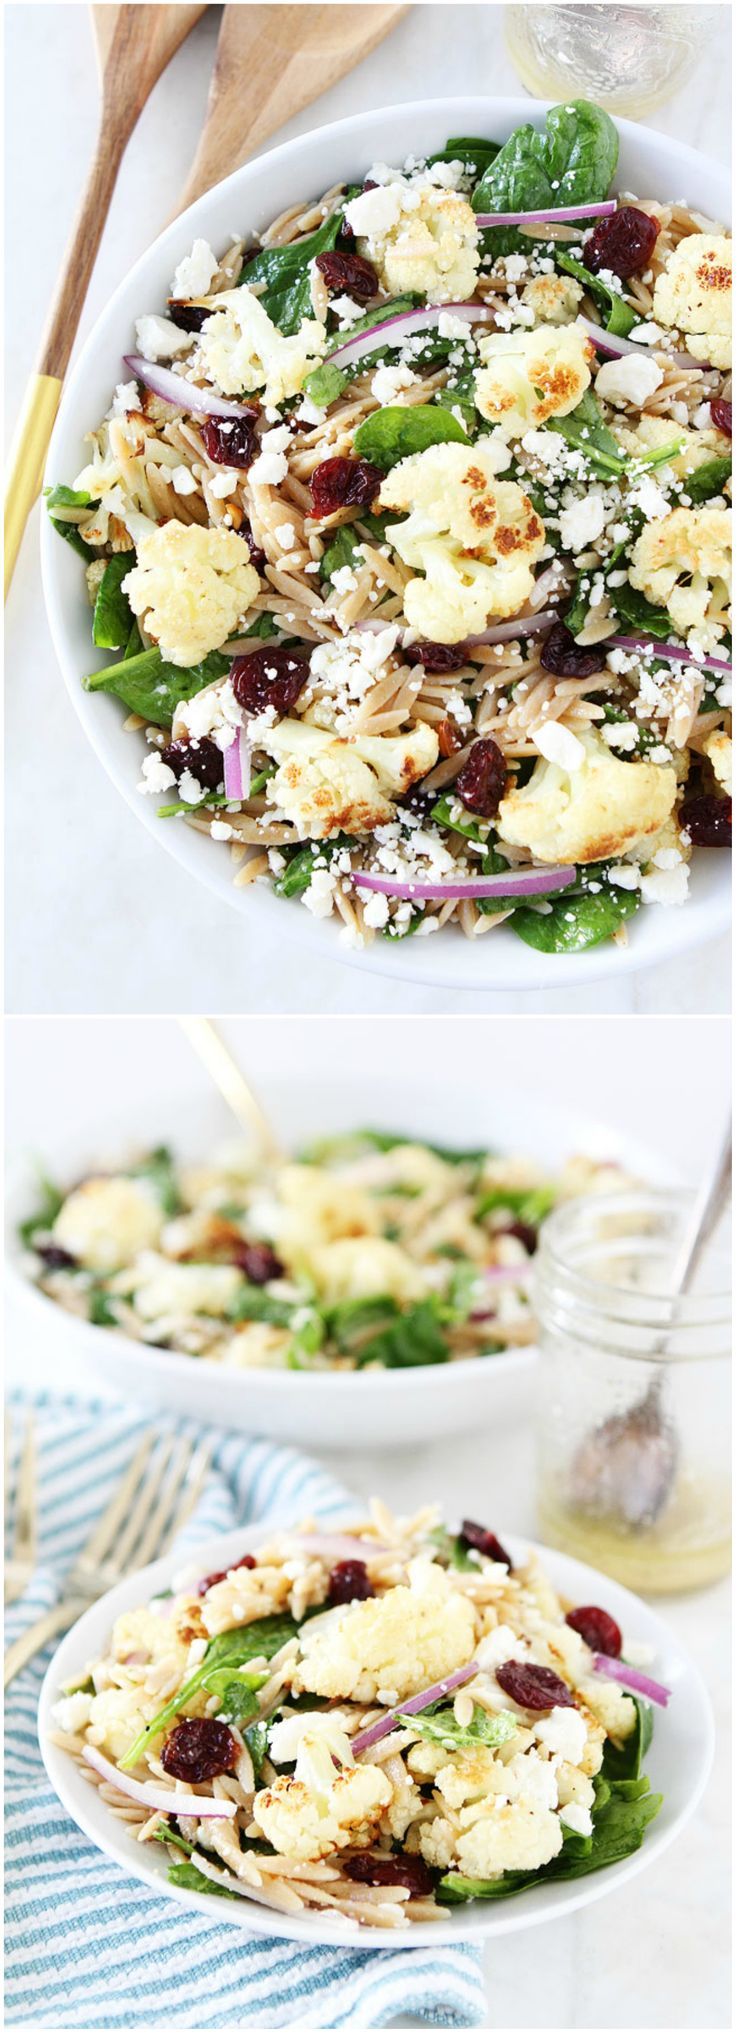 Roasted Cauliflower, Feta, and Orzo Salad Recipe on twopeasandtheirpod.com This spinach salad is loaded with roasted cauliflower, whole wheat orzo, dried cherries, and feta. It is a great salad for lunch or dinner!